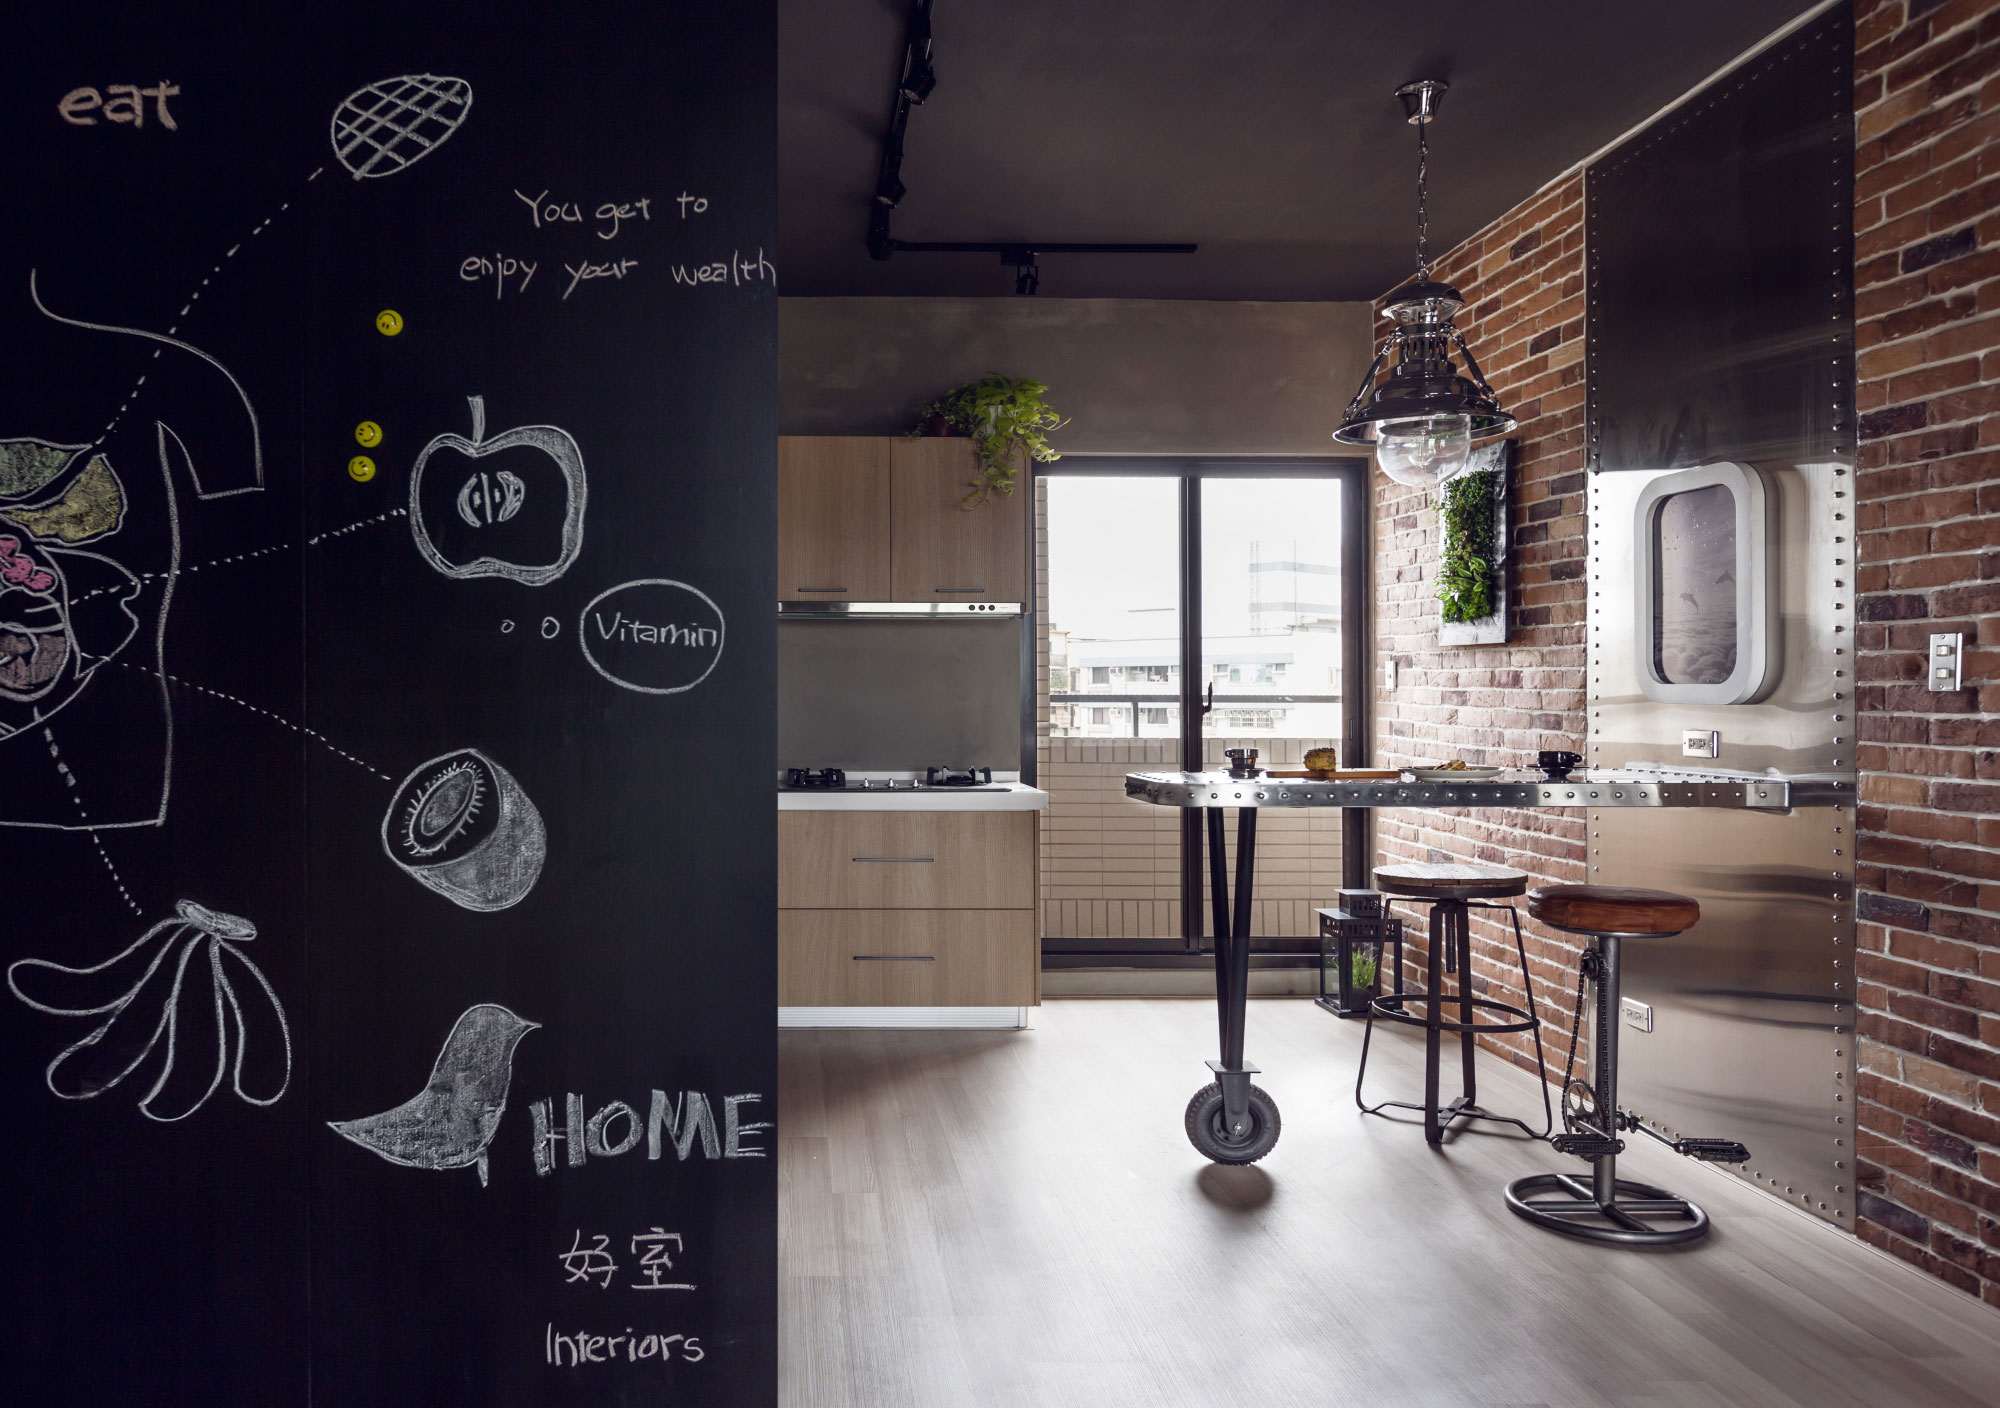 Home Design Studio Complete 17 Hong U0027s House By Homedezen